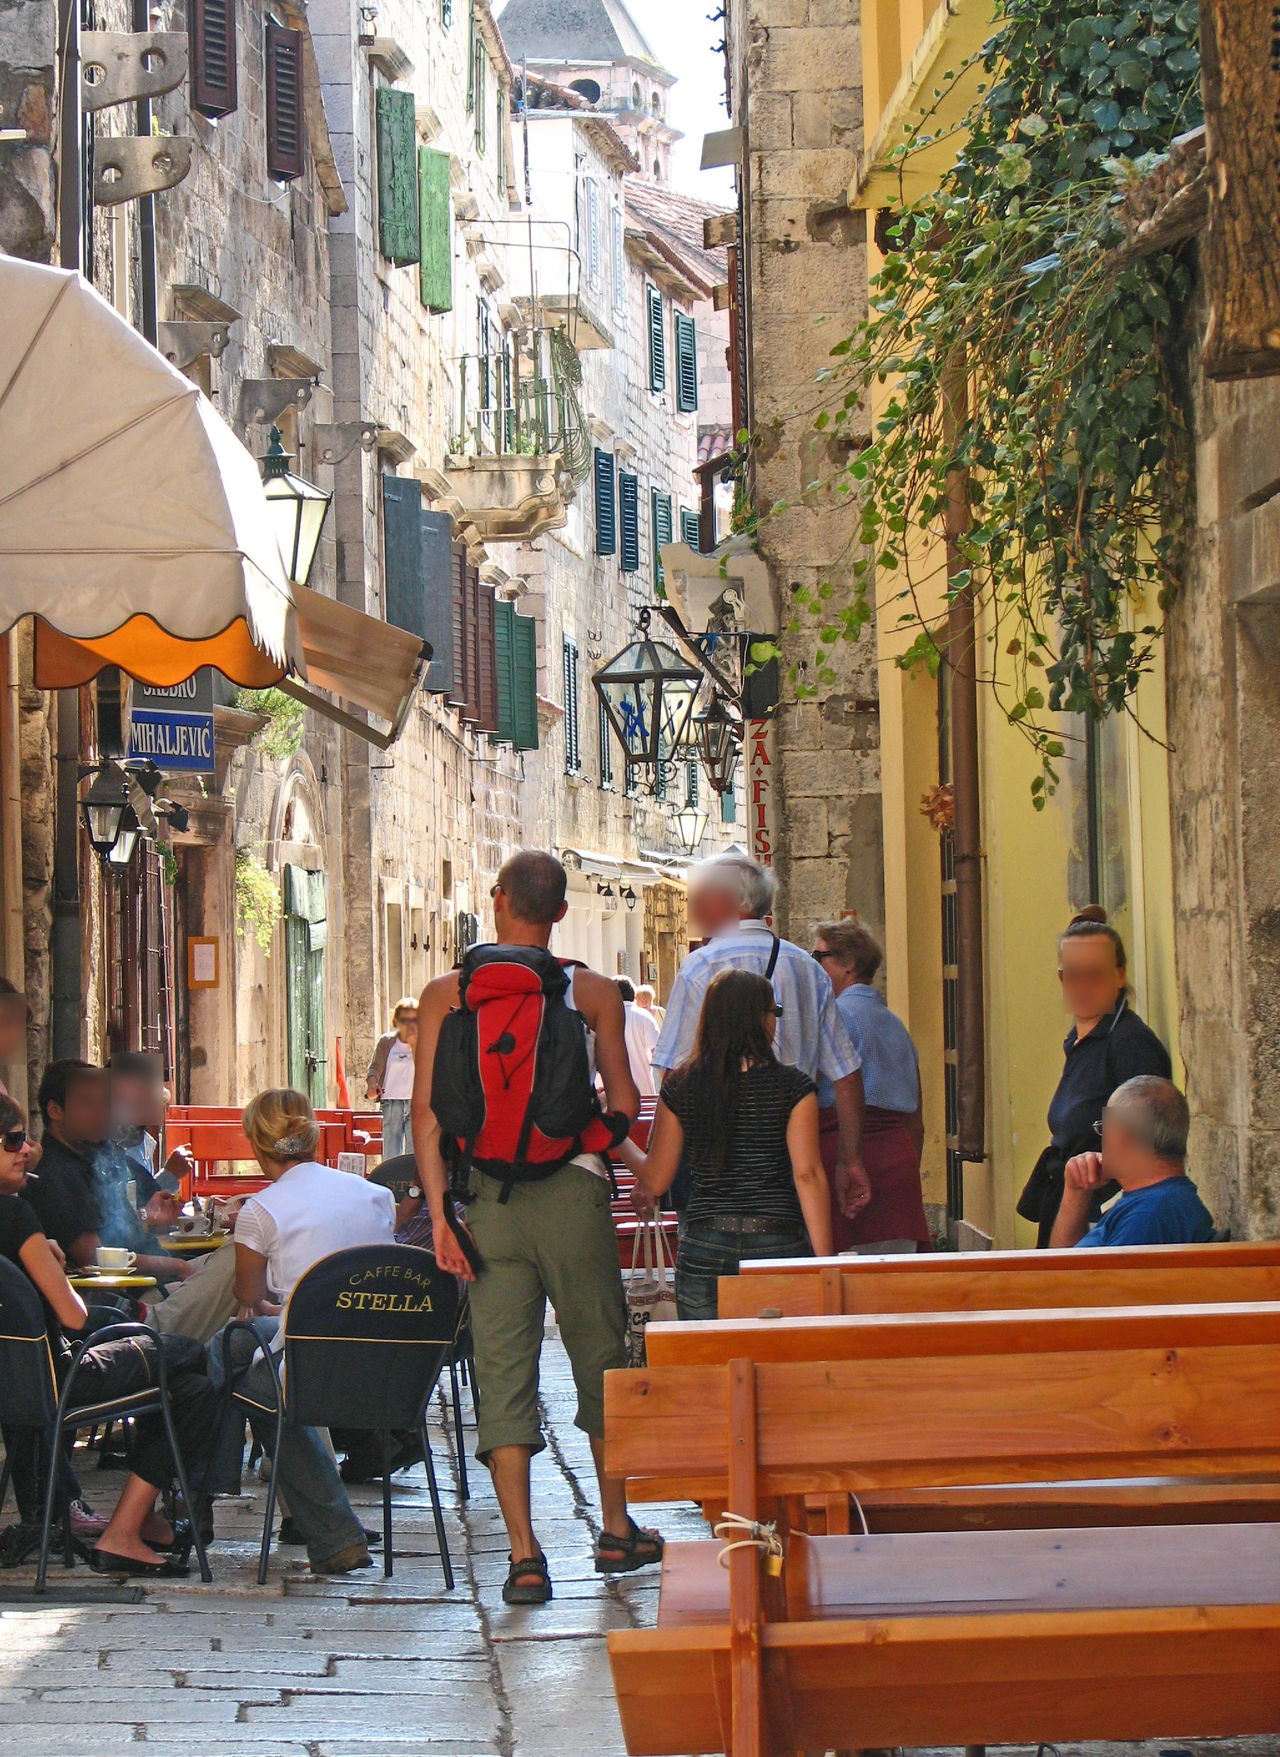 Al Fresco Dining Architecture Bars And Restaurants Building Exterior Built Structure Cafe City Croatian Food Day Large Group Of People Leisure Activity Lifestyles Men Outdoors People Pretty Street Real People Sitting Tourist Destination Website Design Investing In Quality Of Life